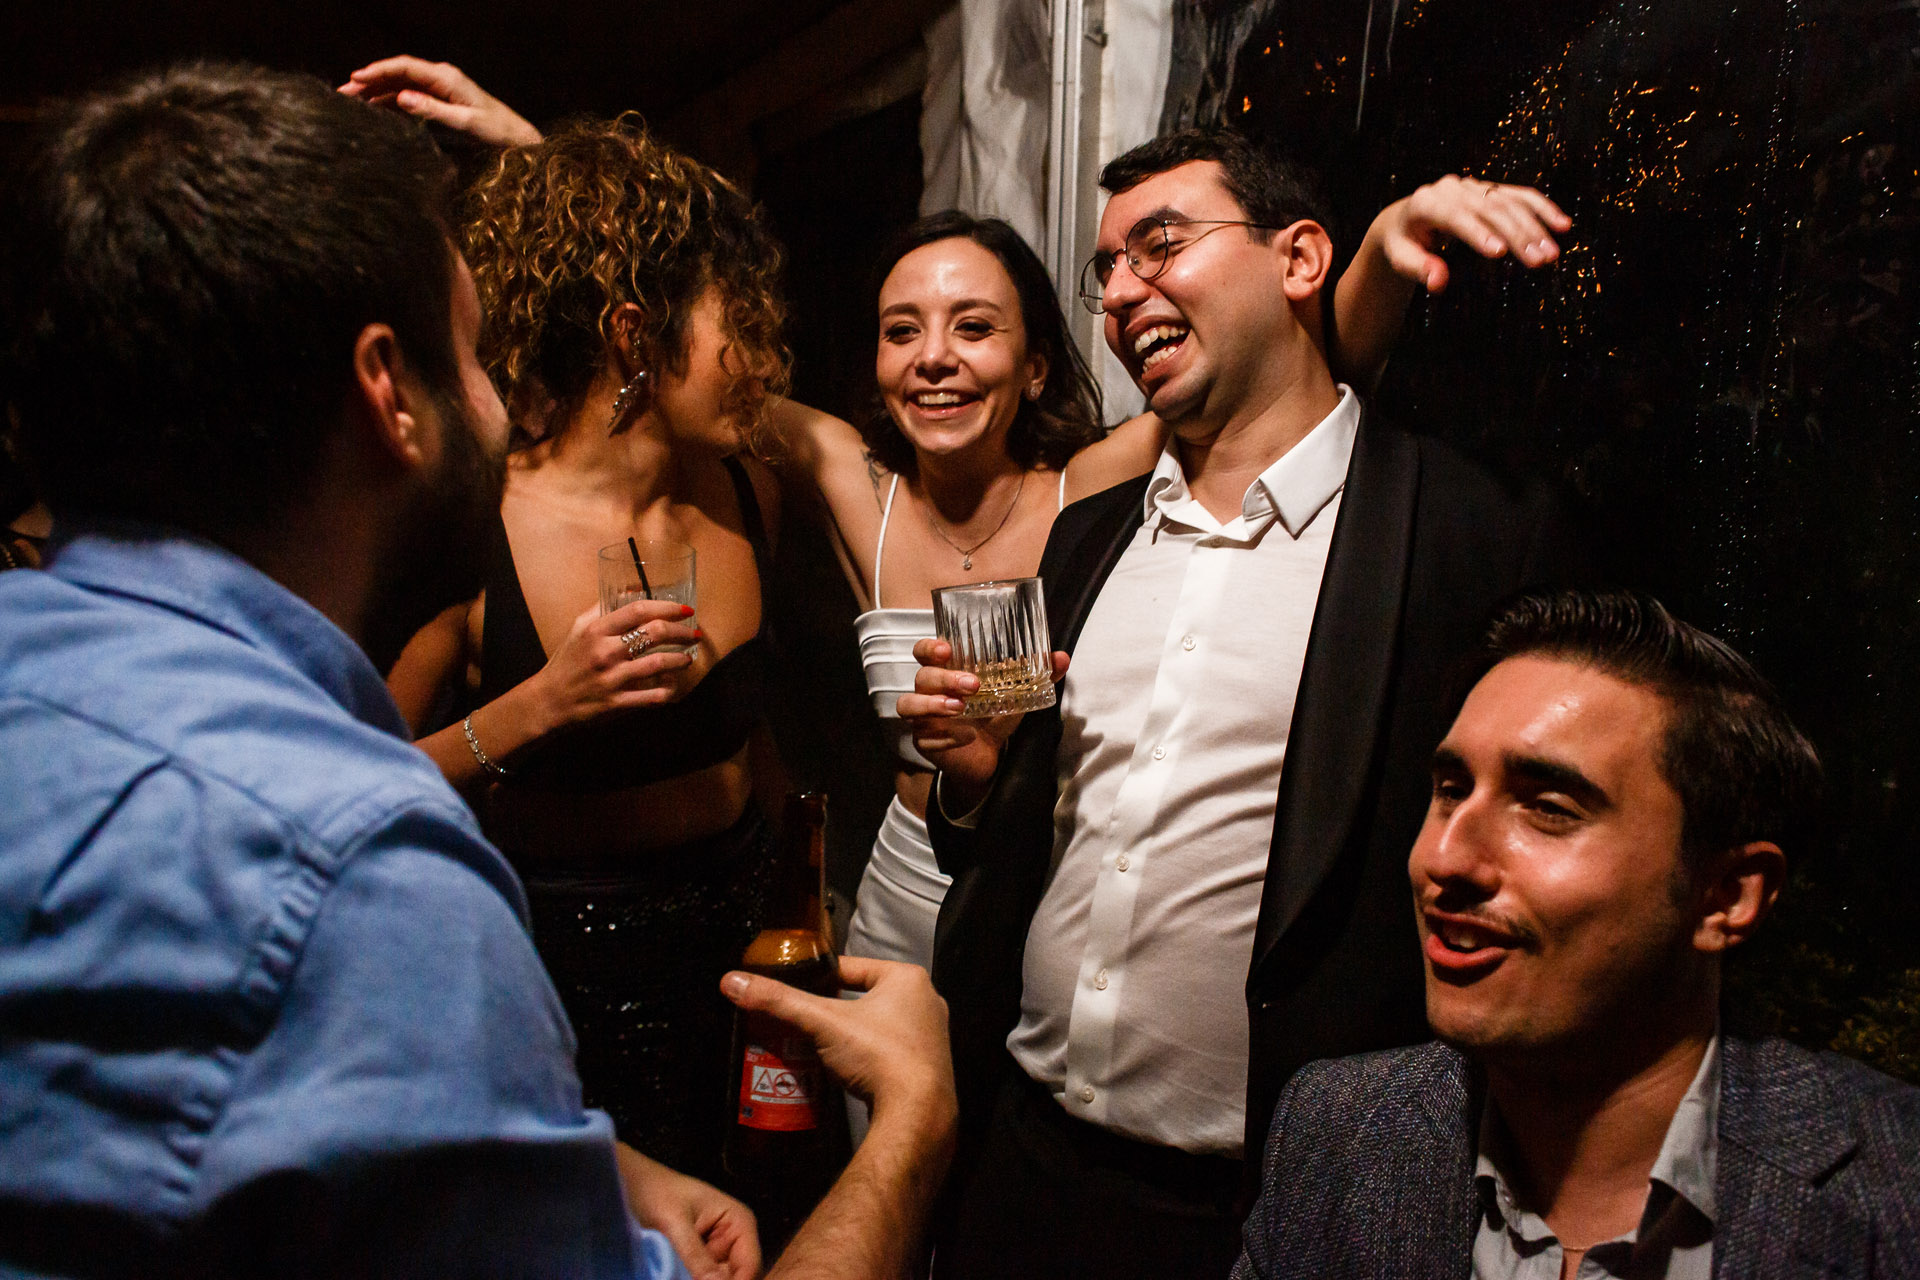 Momo Bebekoy Restaurant Wedding Venue Image, Istanbul | Two friends are dancing in the front